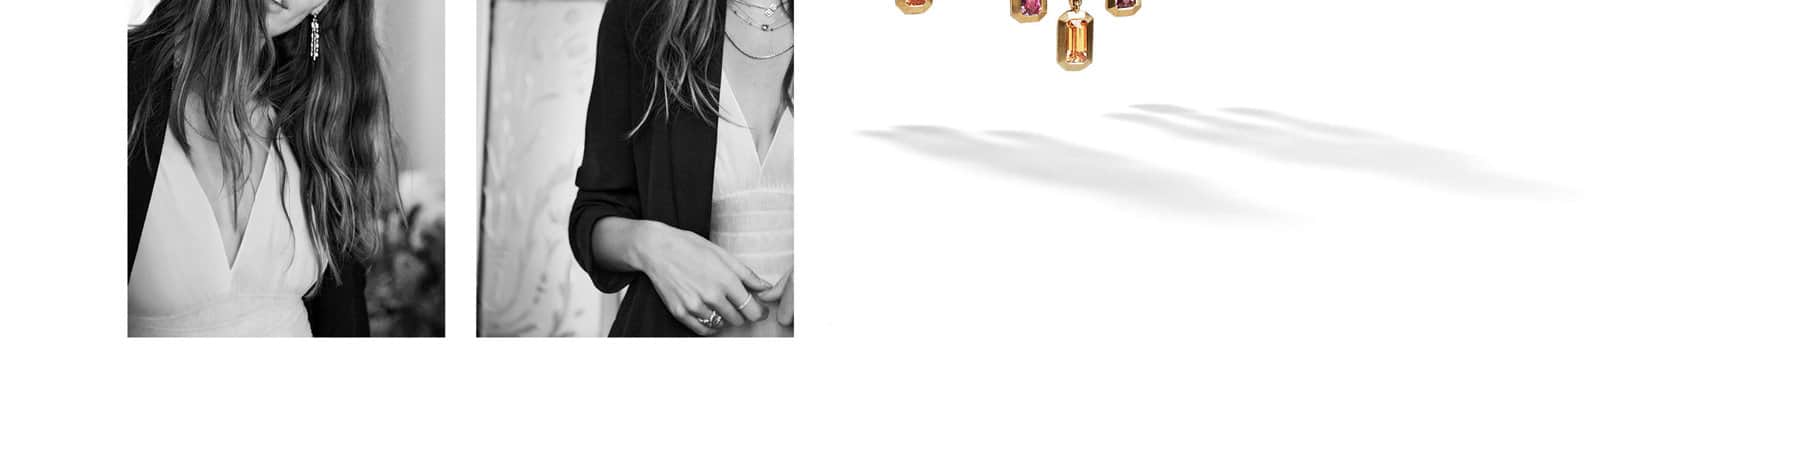 A pull quote by model Juliette Labelle is placed to the right of two black-and-white photos of her wearing a dress and a black jacket with David Yurman jewelry.